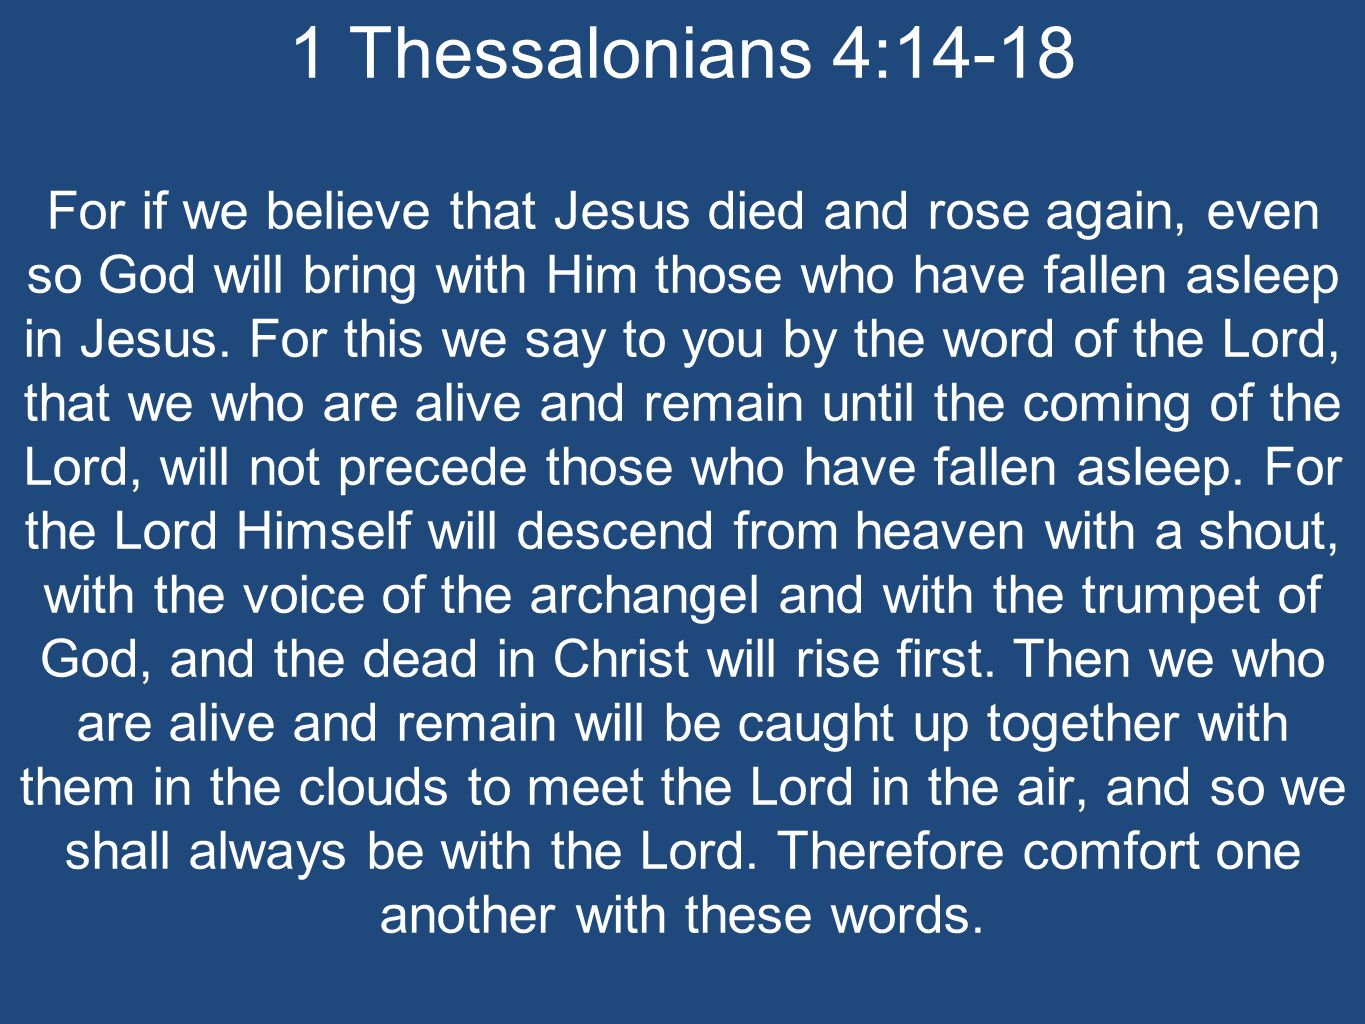 1 Thessalonians 4:14-18 For if we believe that Jesus died and rose again, even so God will bring with Him those who have fallen asleep in Jesus.